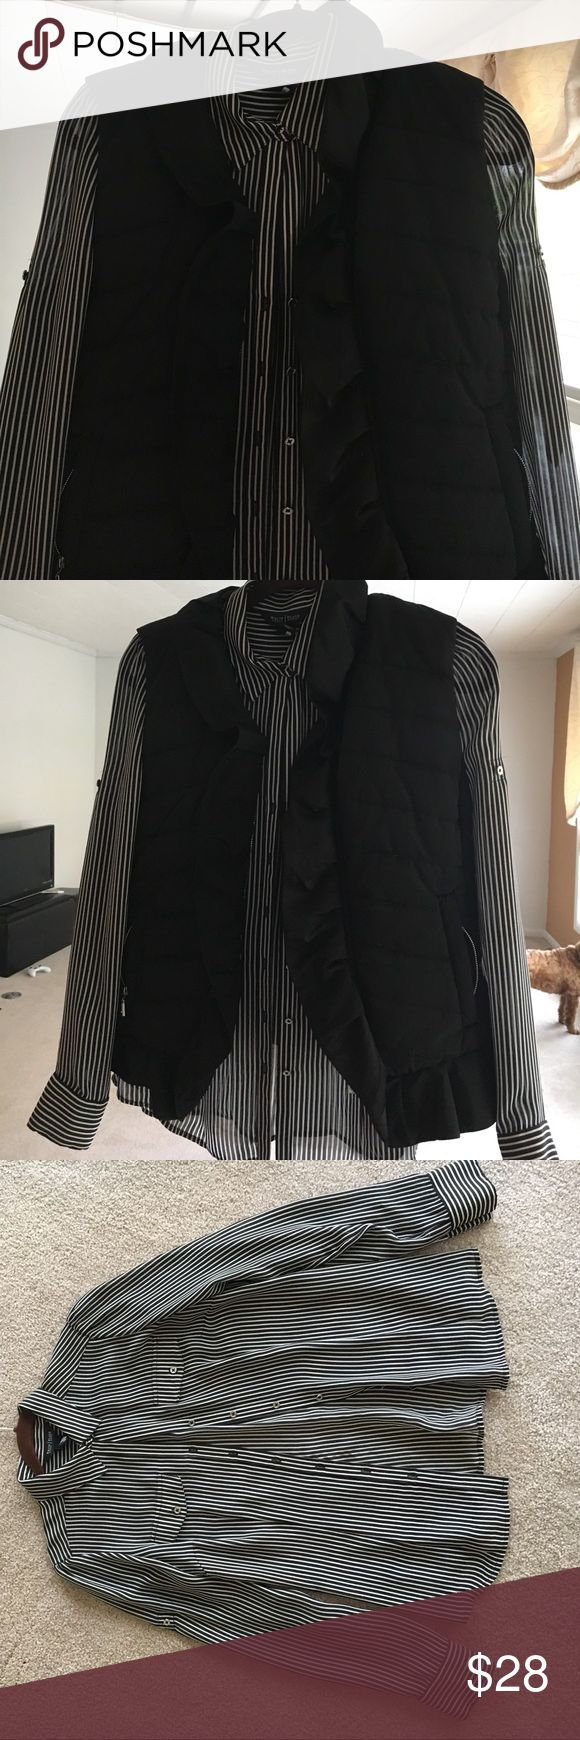 WHBM size 4 women's black and white striped shirt Perfect condition WHBM women's size 4 black and white striped shear button down. Been worn a few times around the holiday season. White House Black Market Tops Blouses